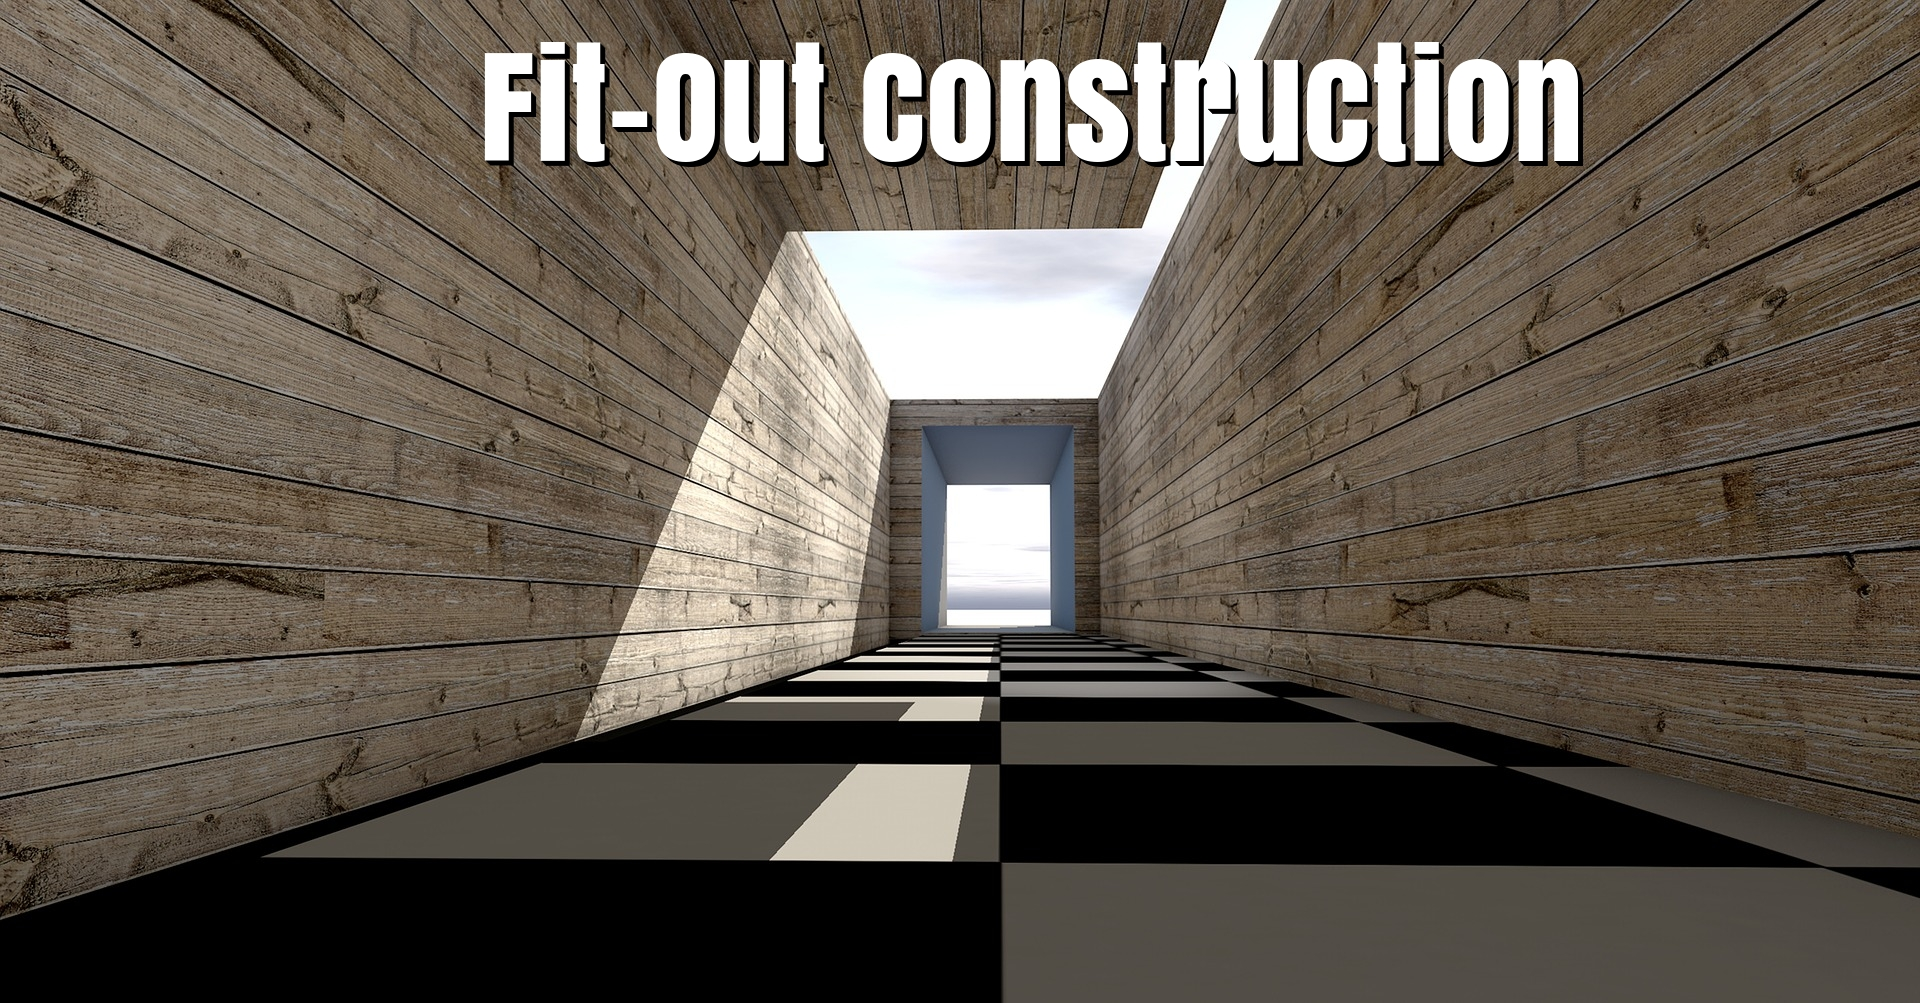 A Business Owner's Guide to Fit Out Construction